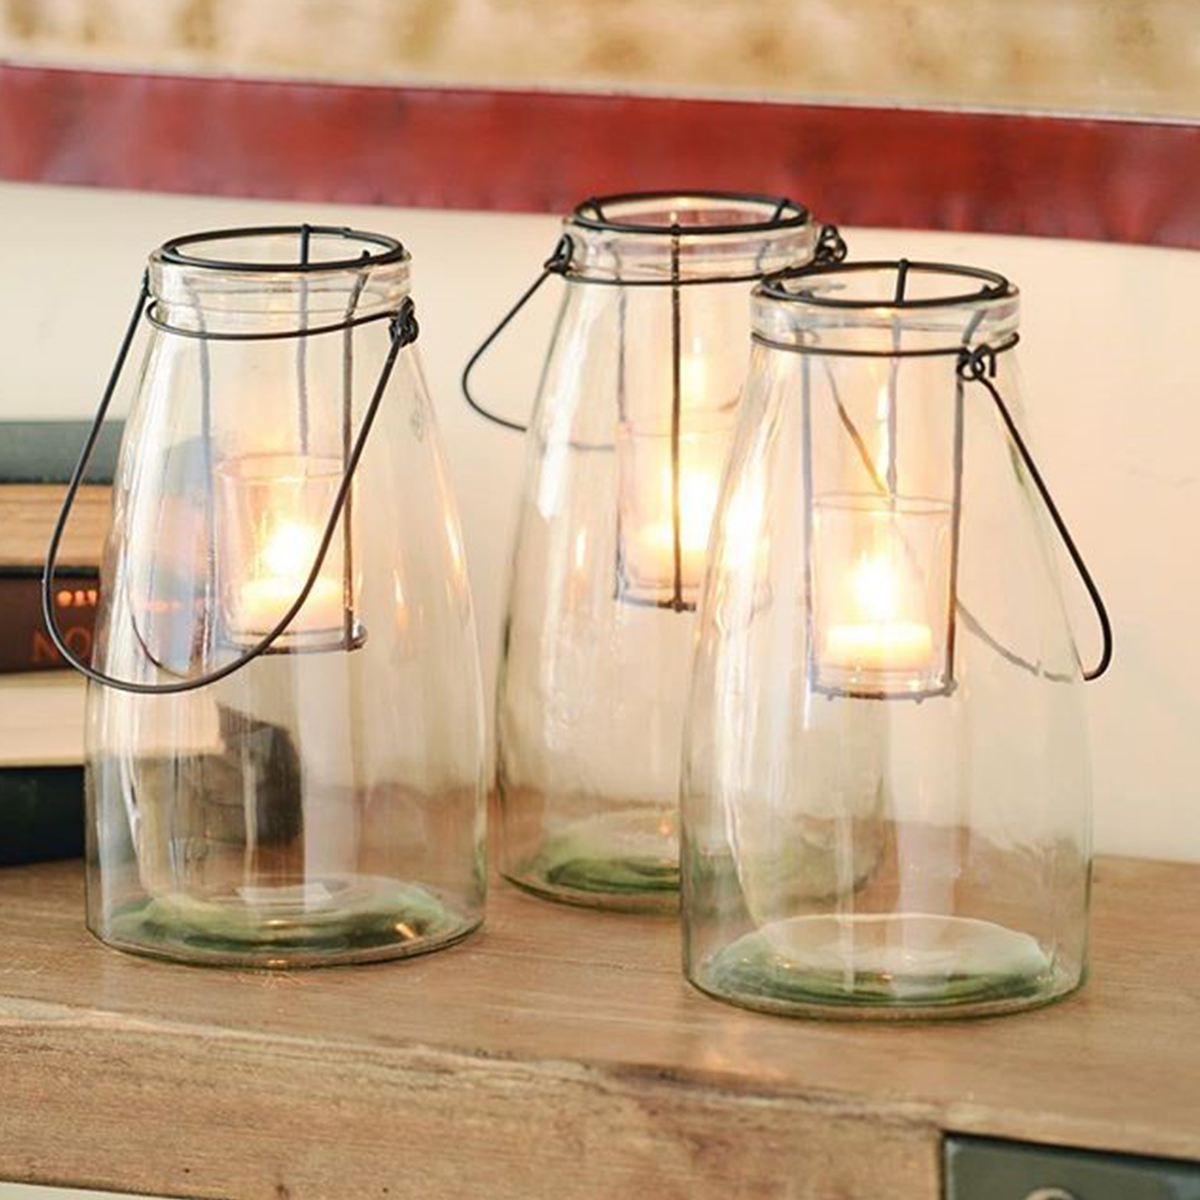 Fall in Love with These Lanterns photo